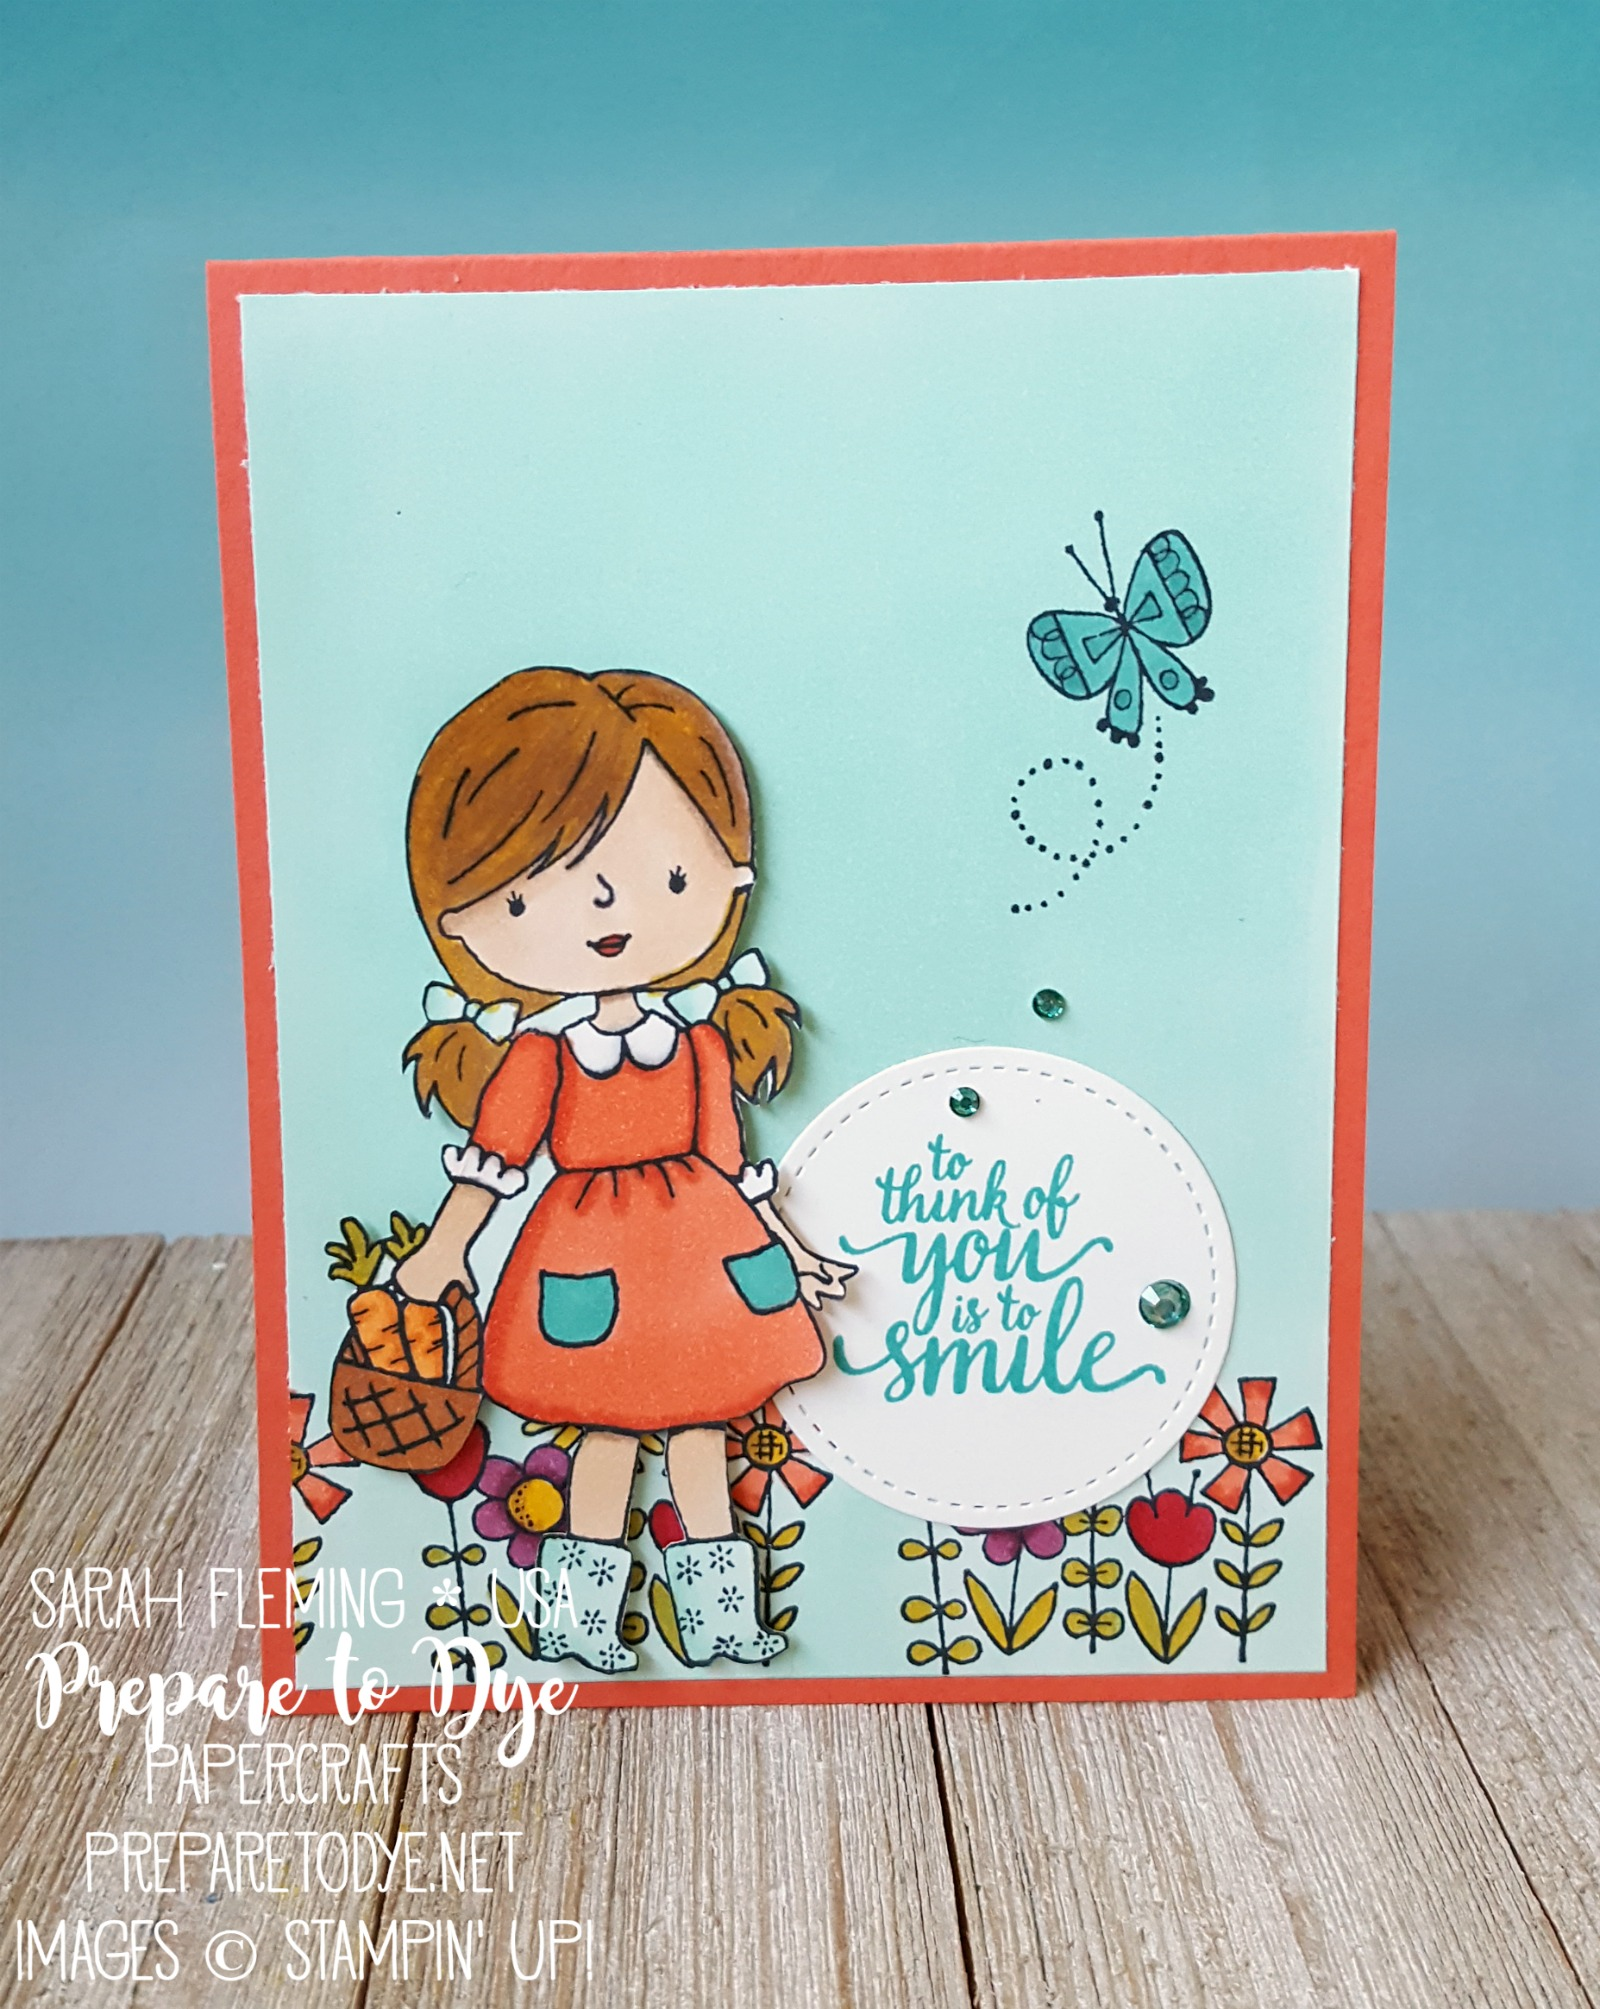 Stampin' Up! Garden Girl with Eastern Beauty and Stampin' Blends alcohol marker - handmade friend card - Sarah Fleming - Prepare to Dye Papercrafts